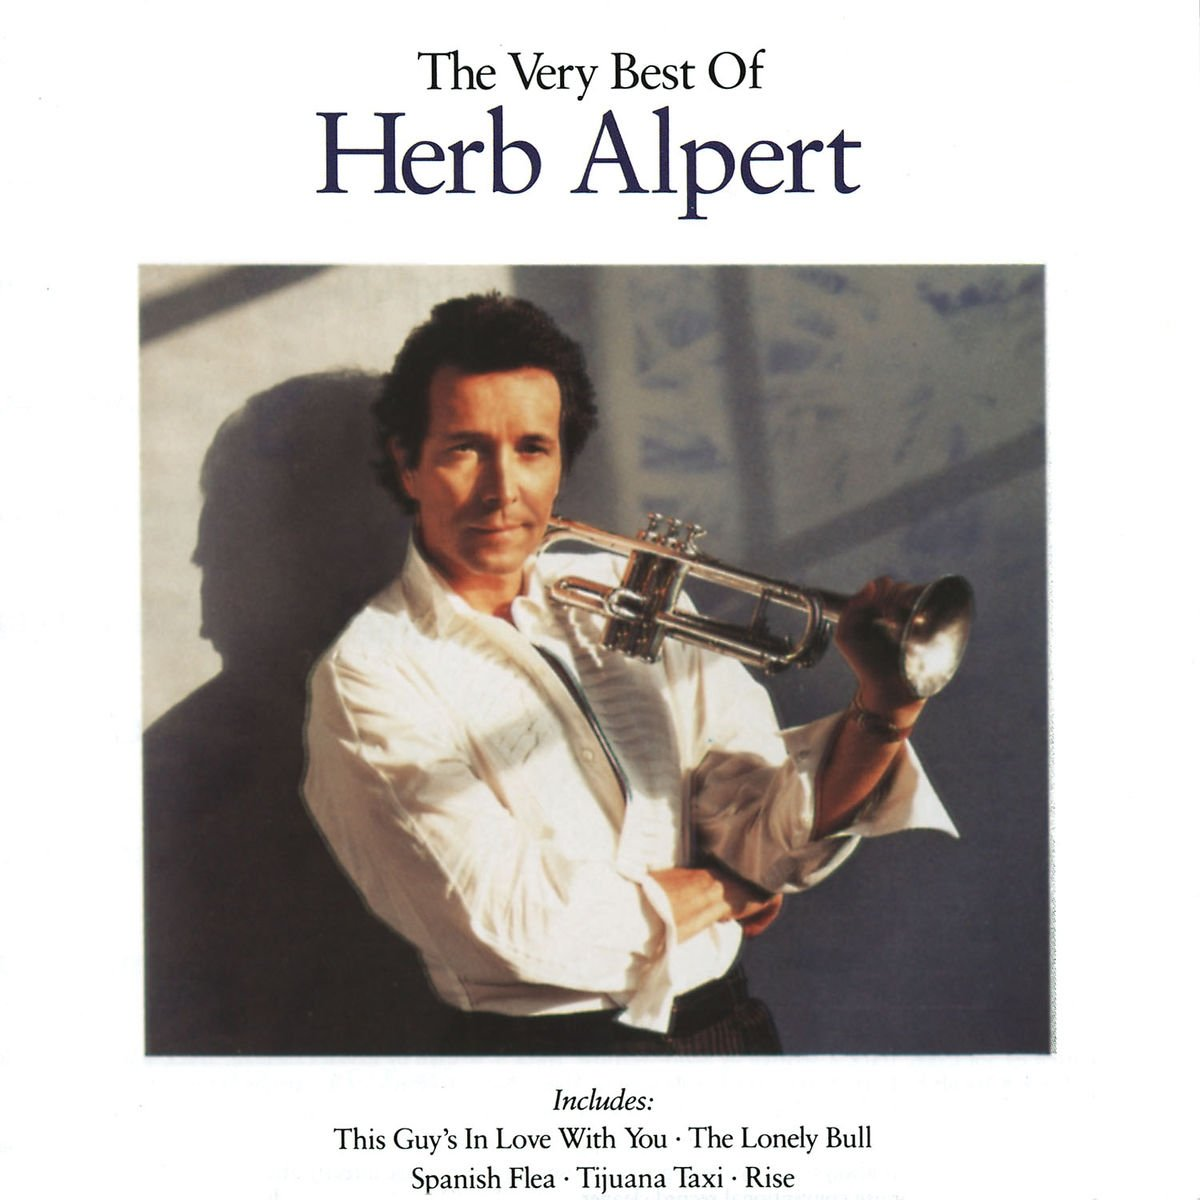 The Very Best of Herb Alpert by Herb Alpert